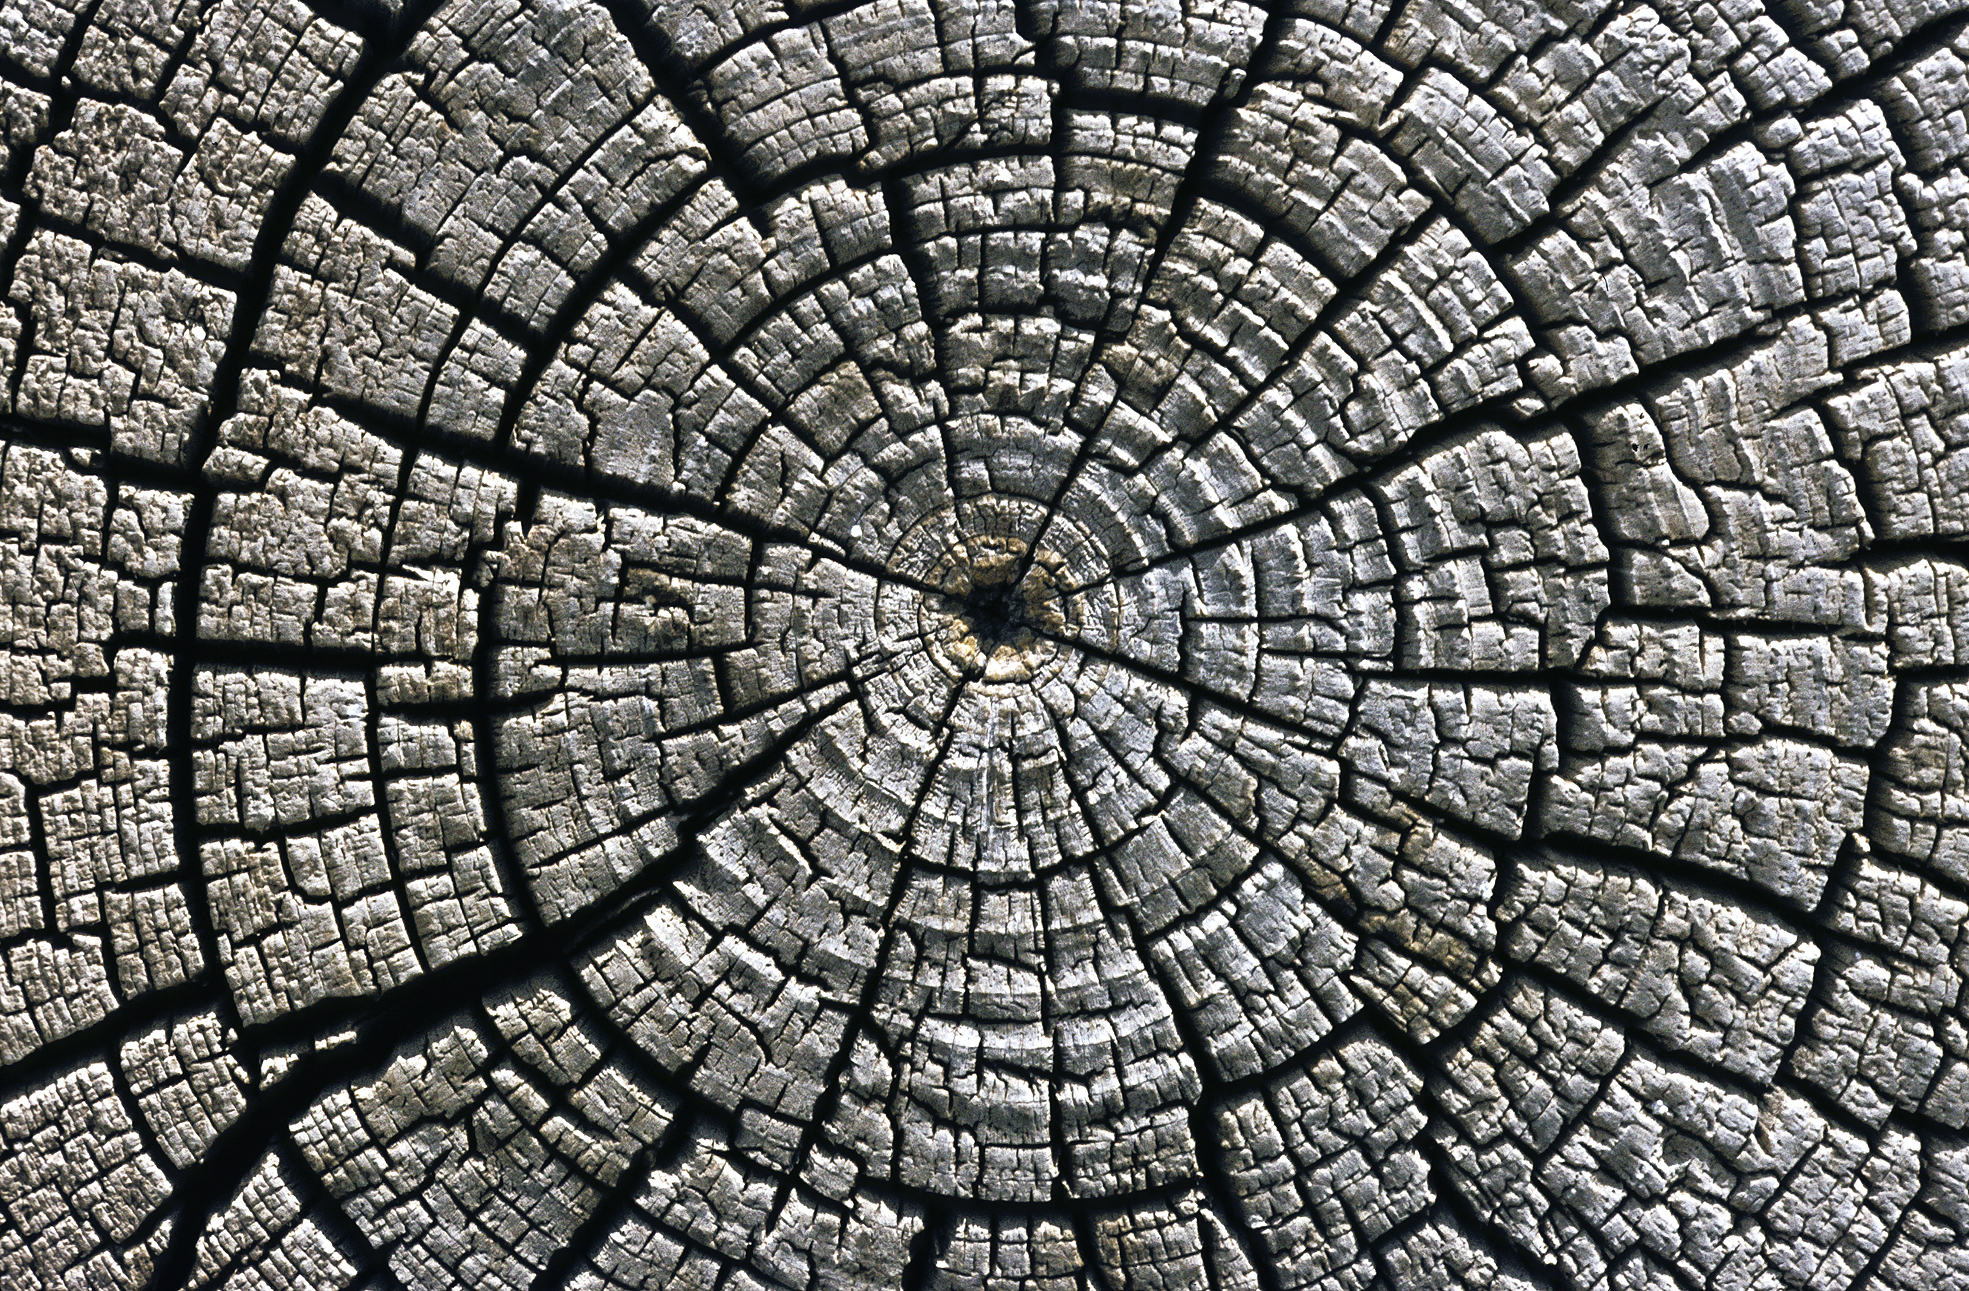 CONCEPT IMAGE_tree growth rings.jpg